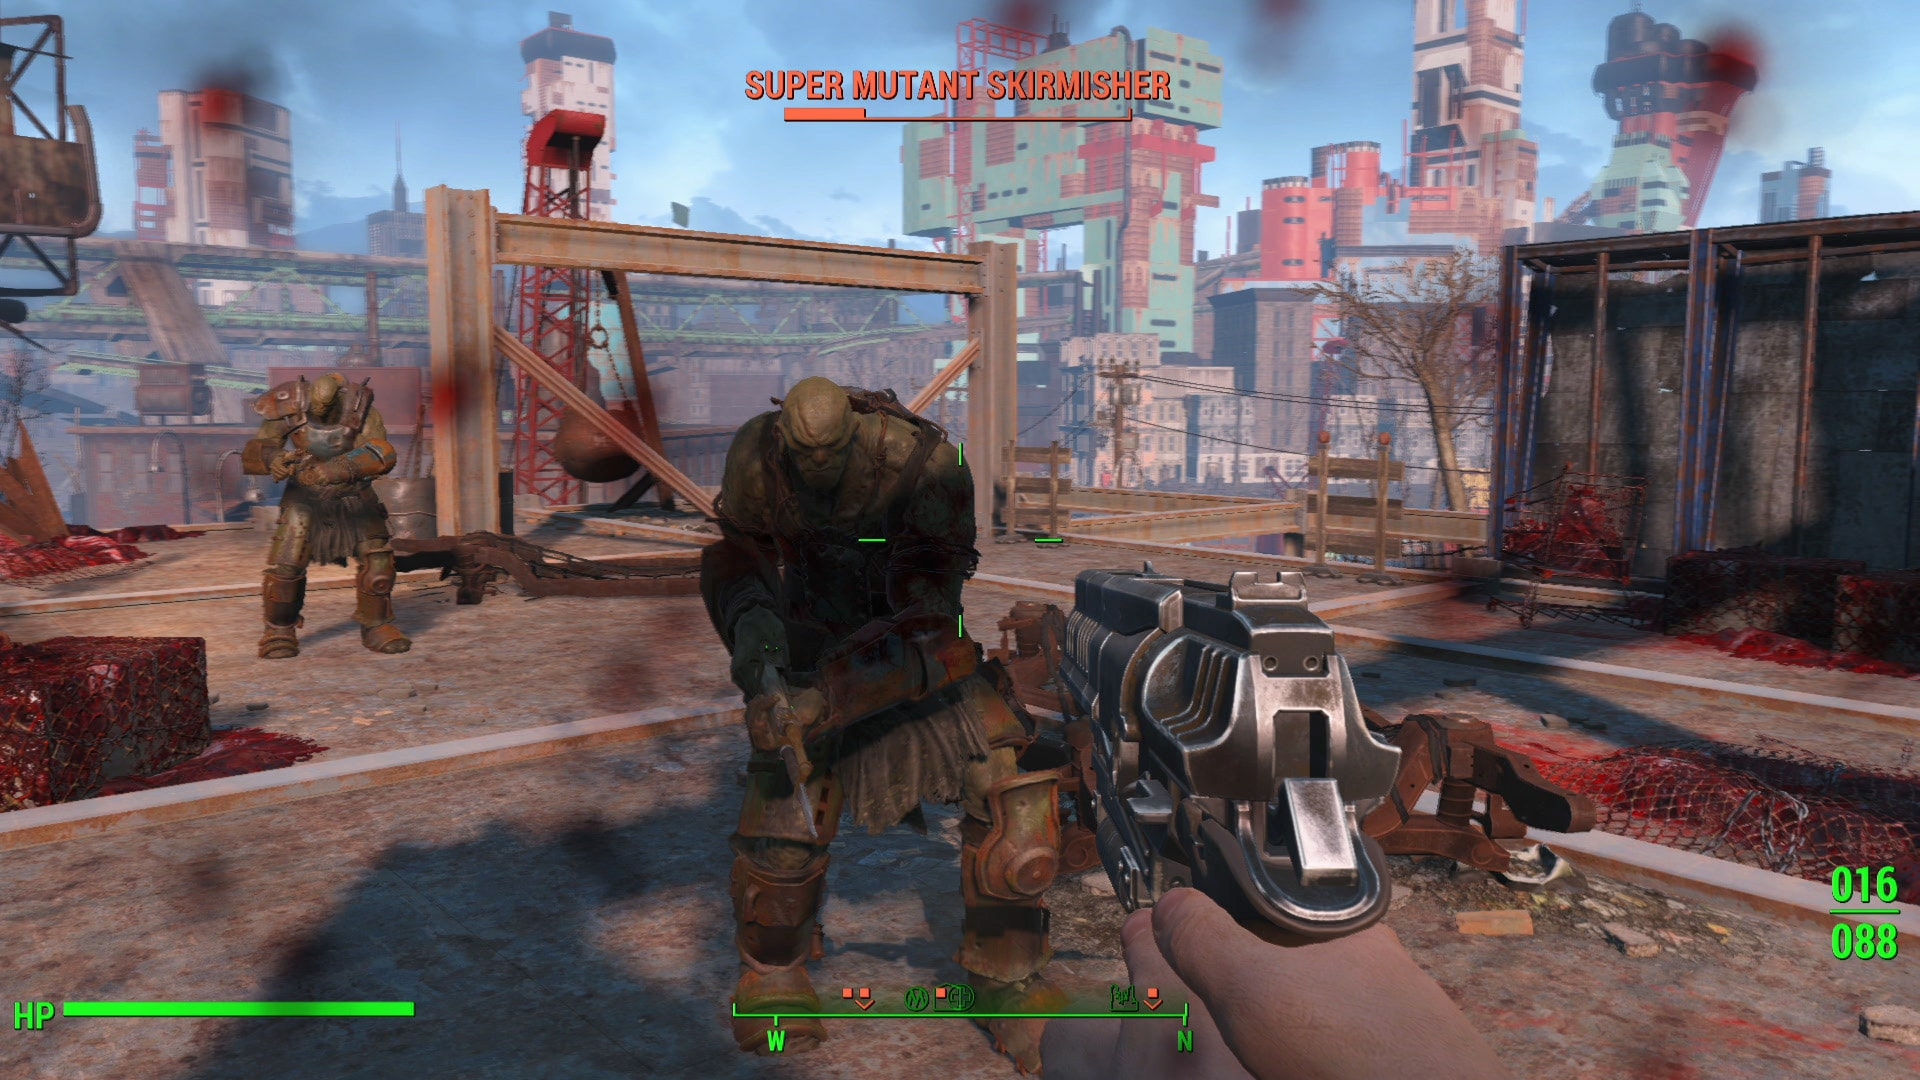 Fighting a Super Mutant